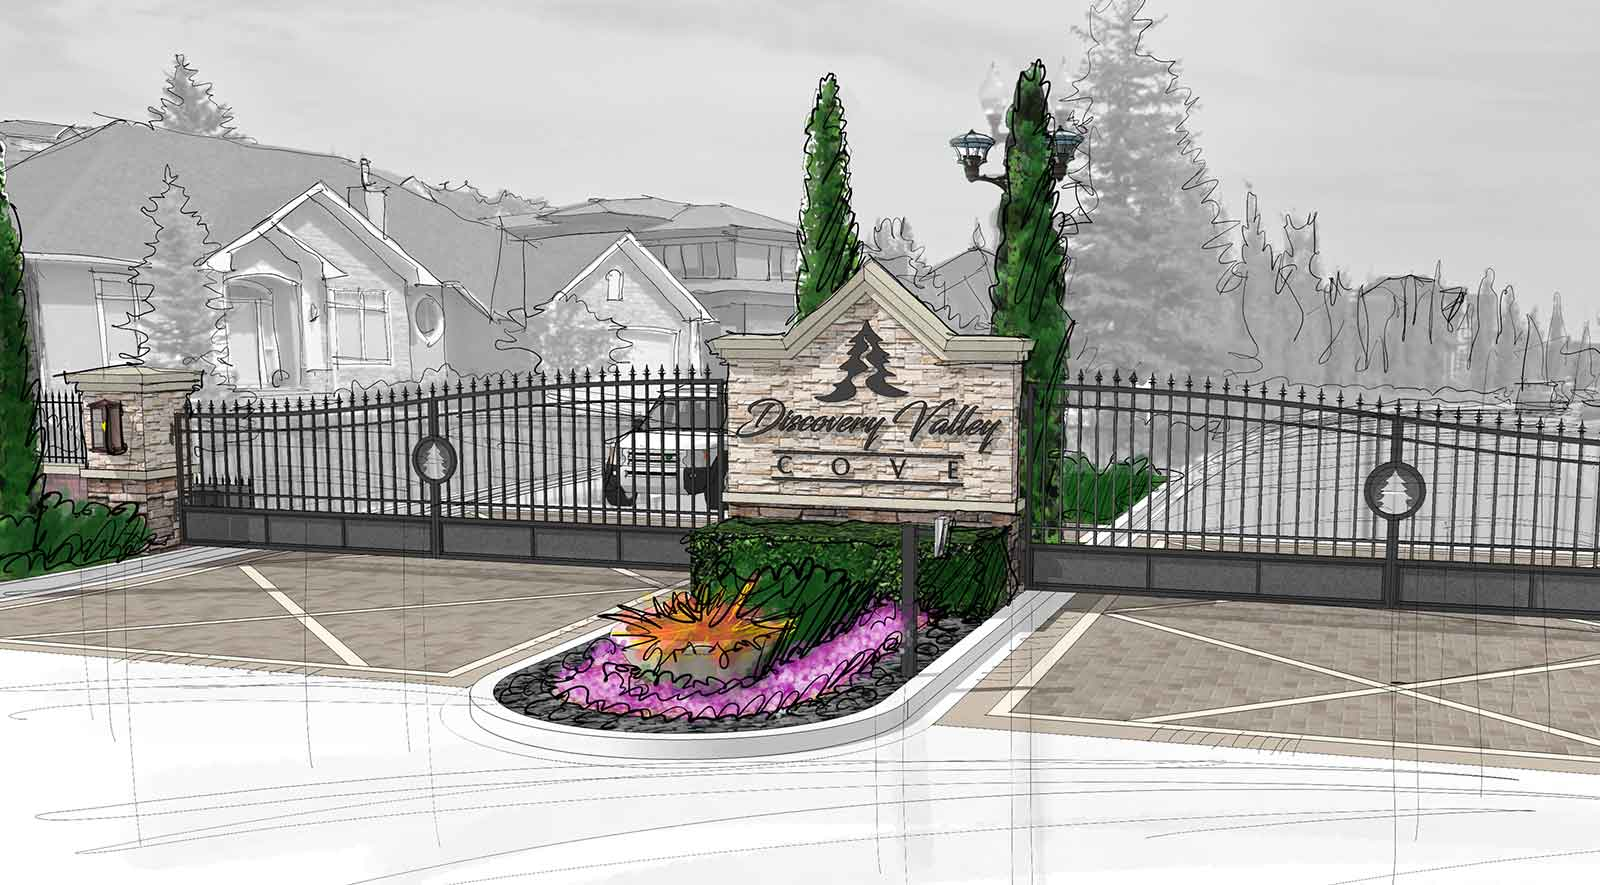 | Conceptual r  endering of the updated entry gate design for the Discovery Valley Cove - Calgary.